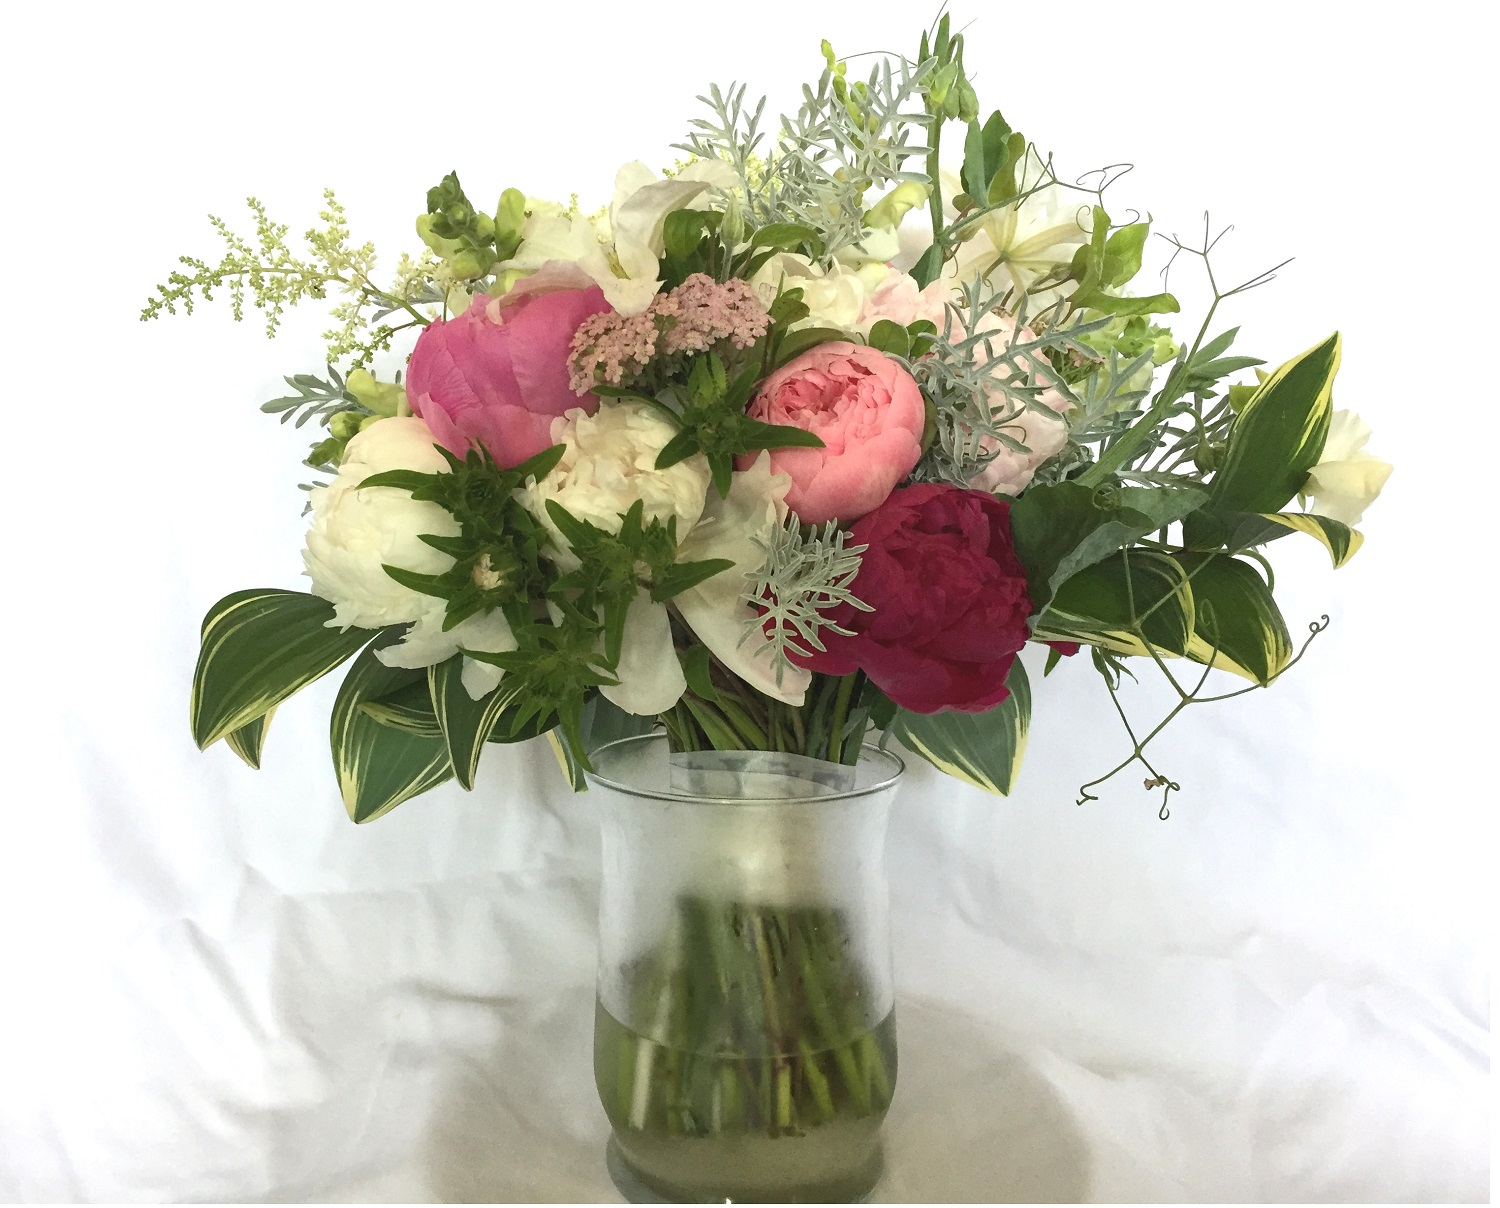 Erica's bouquet—peony, dusty miller, variegated solomon seal, astilbe, stoke's aster